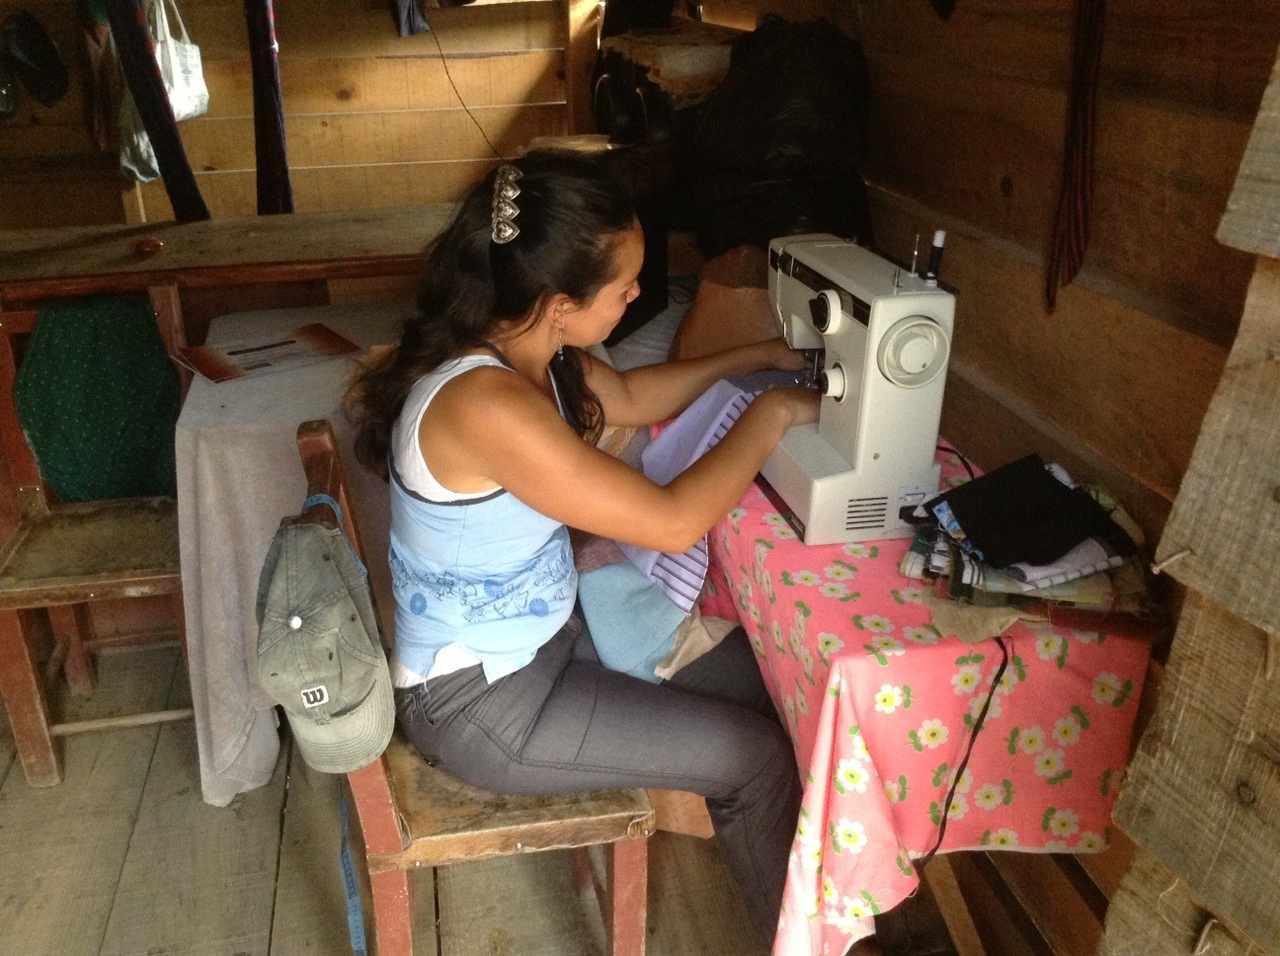 Glenda at work in her home business.